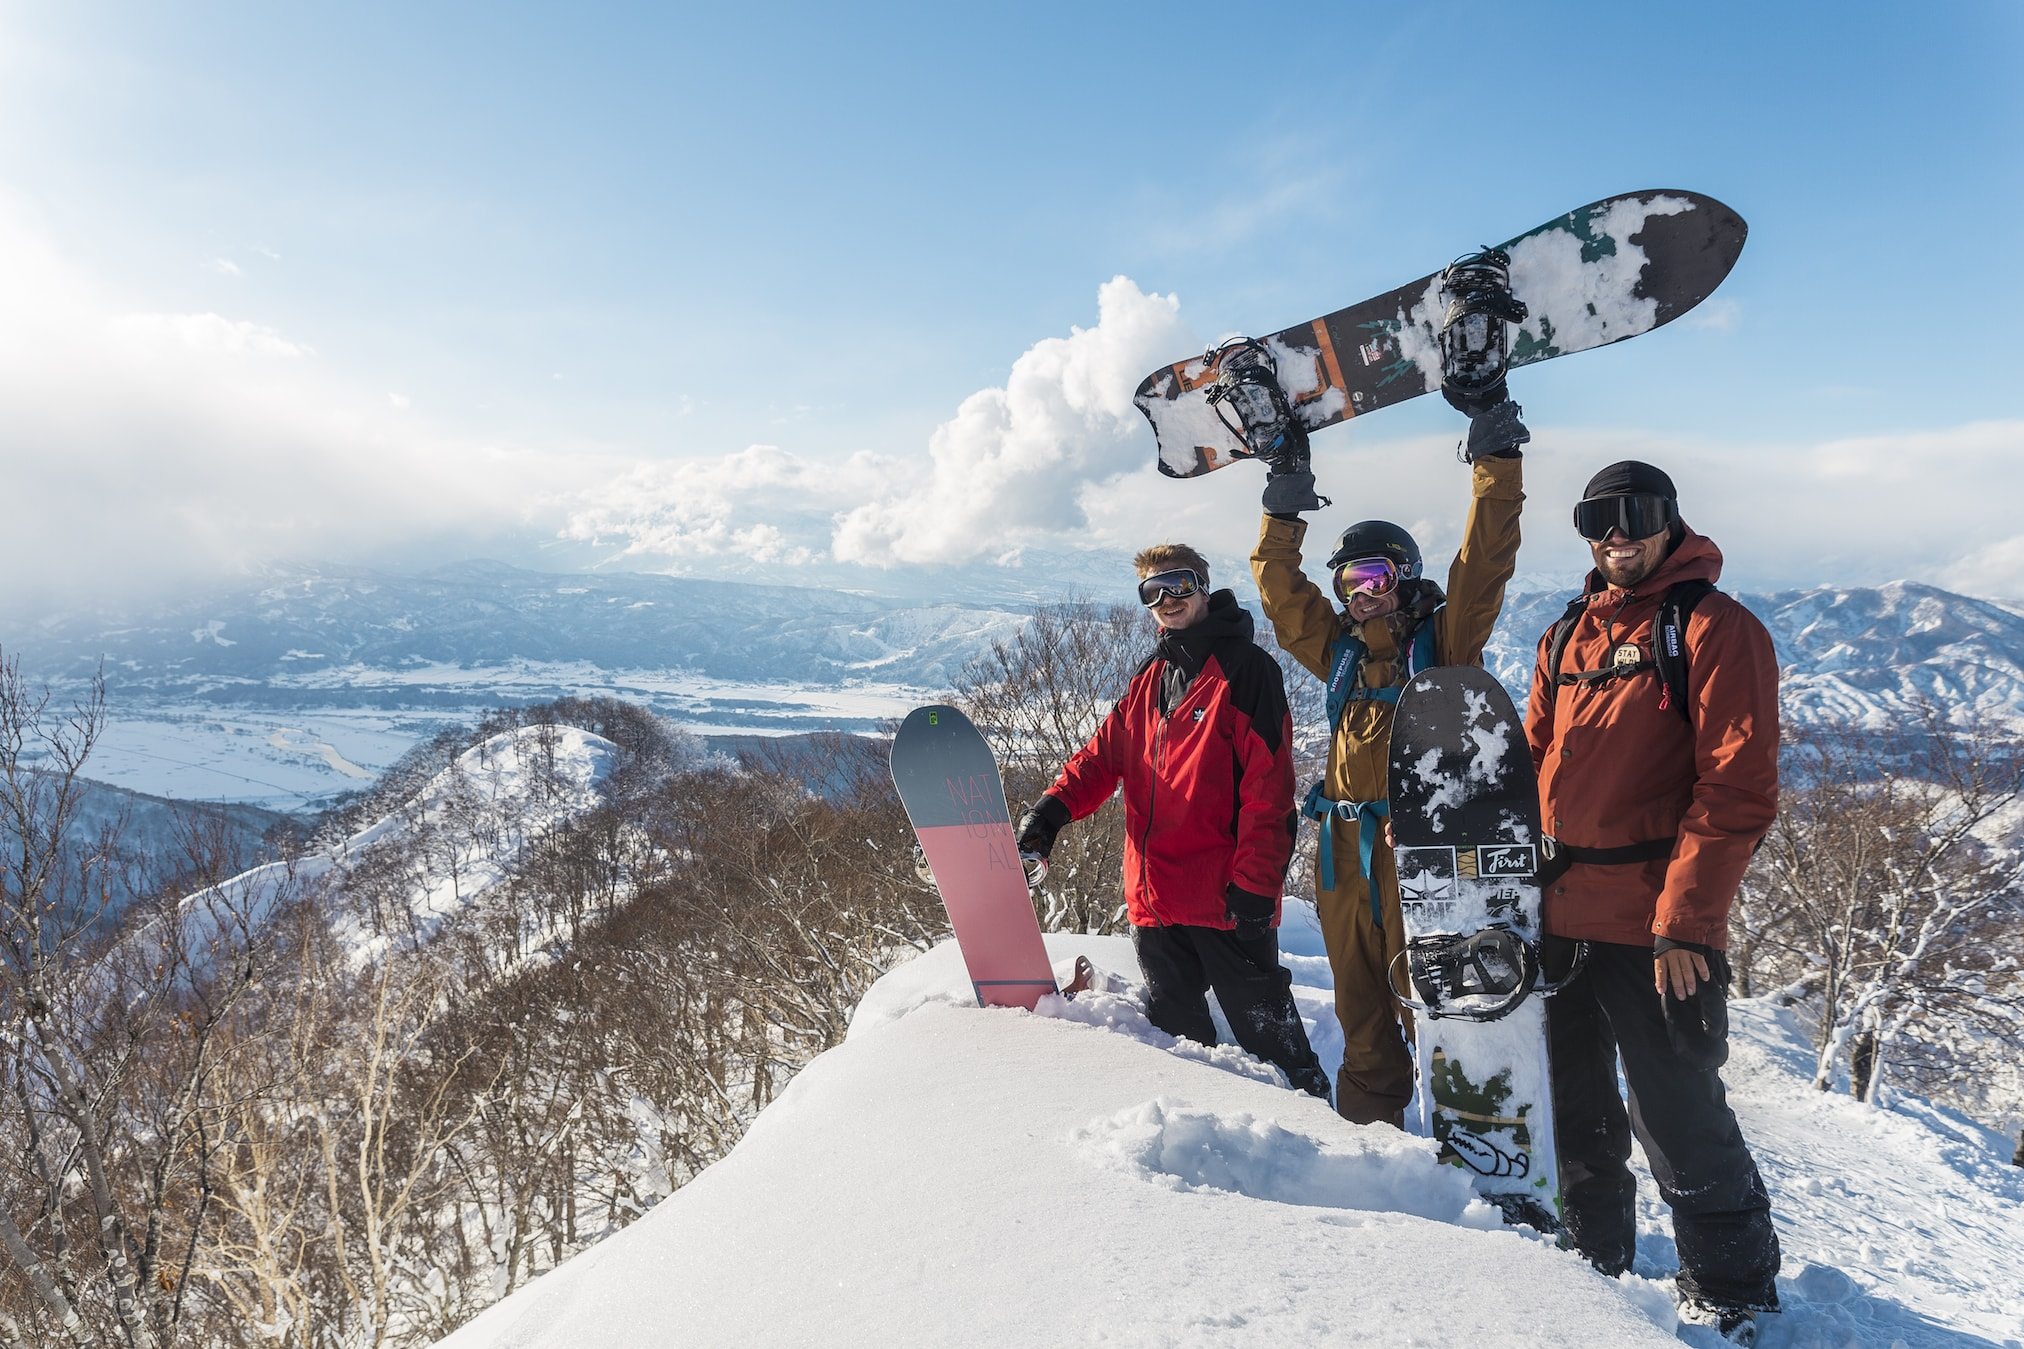 Powder Culture Tour on top of mountain in Nozawa Onsen with First Tours